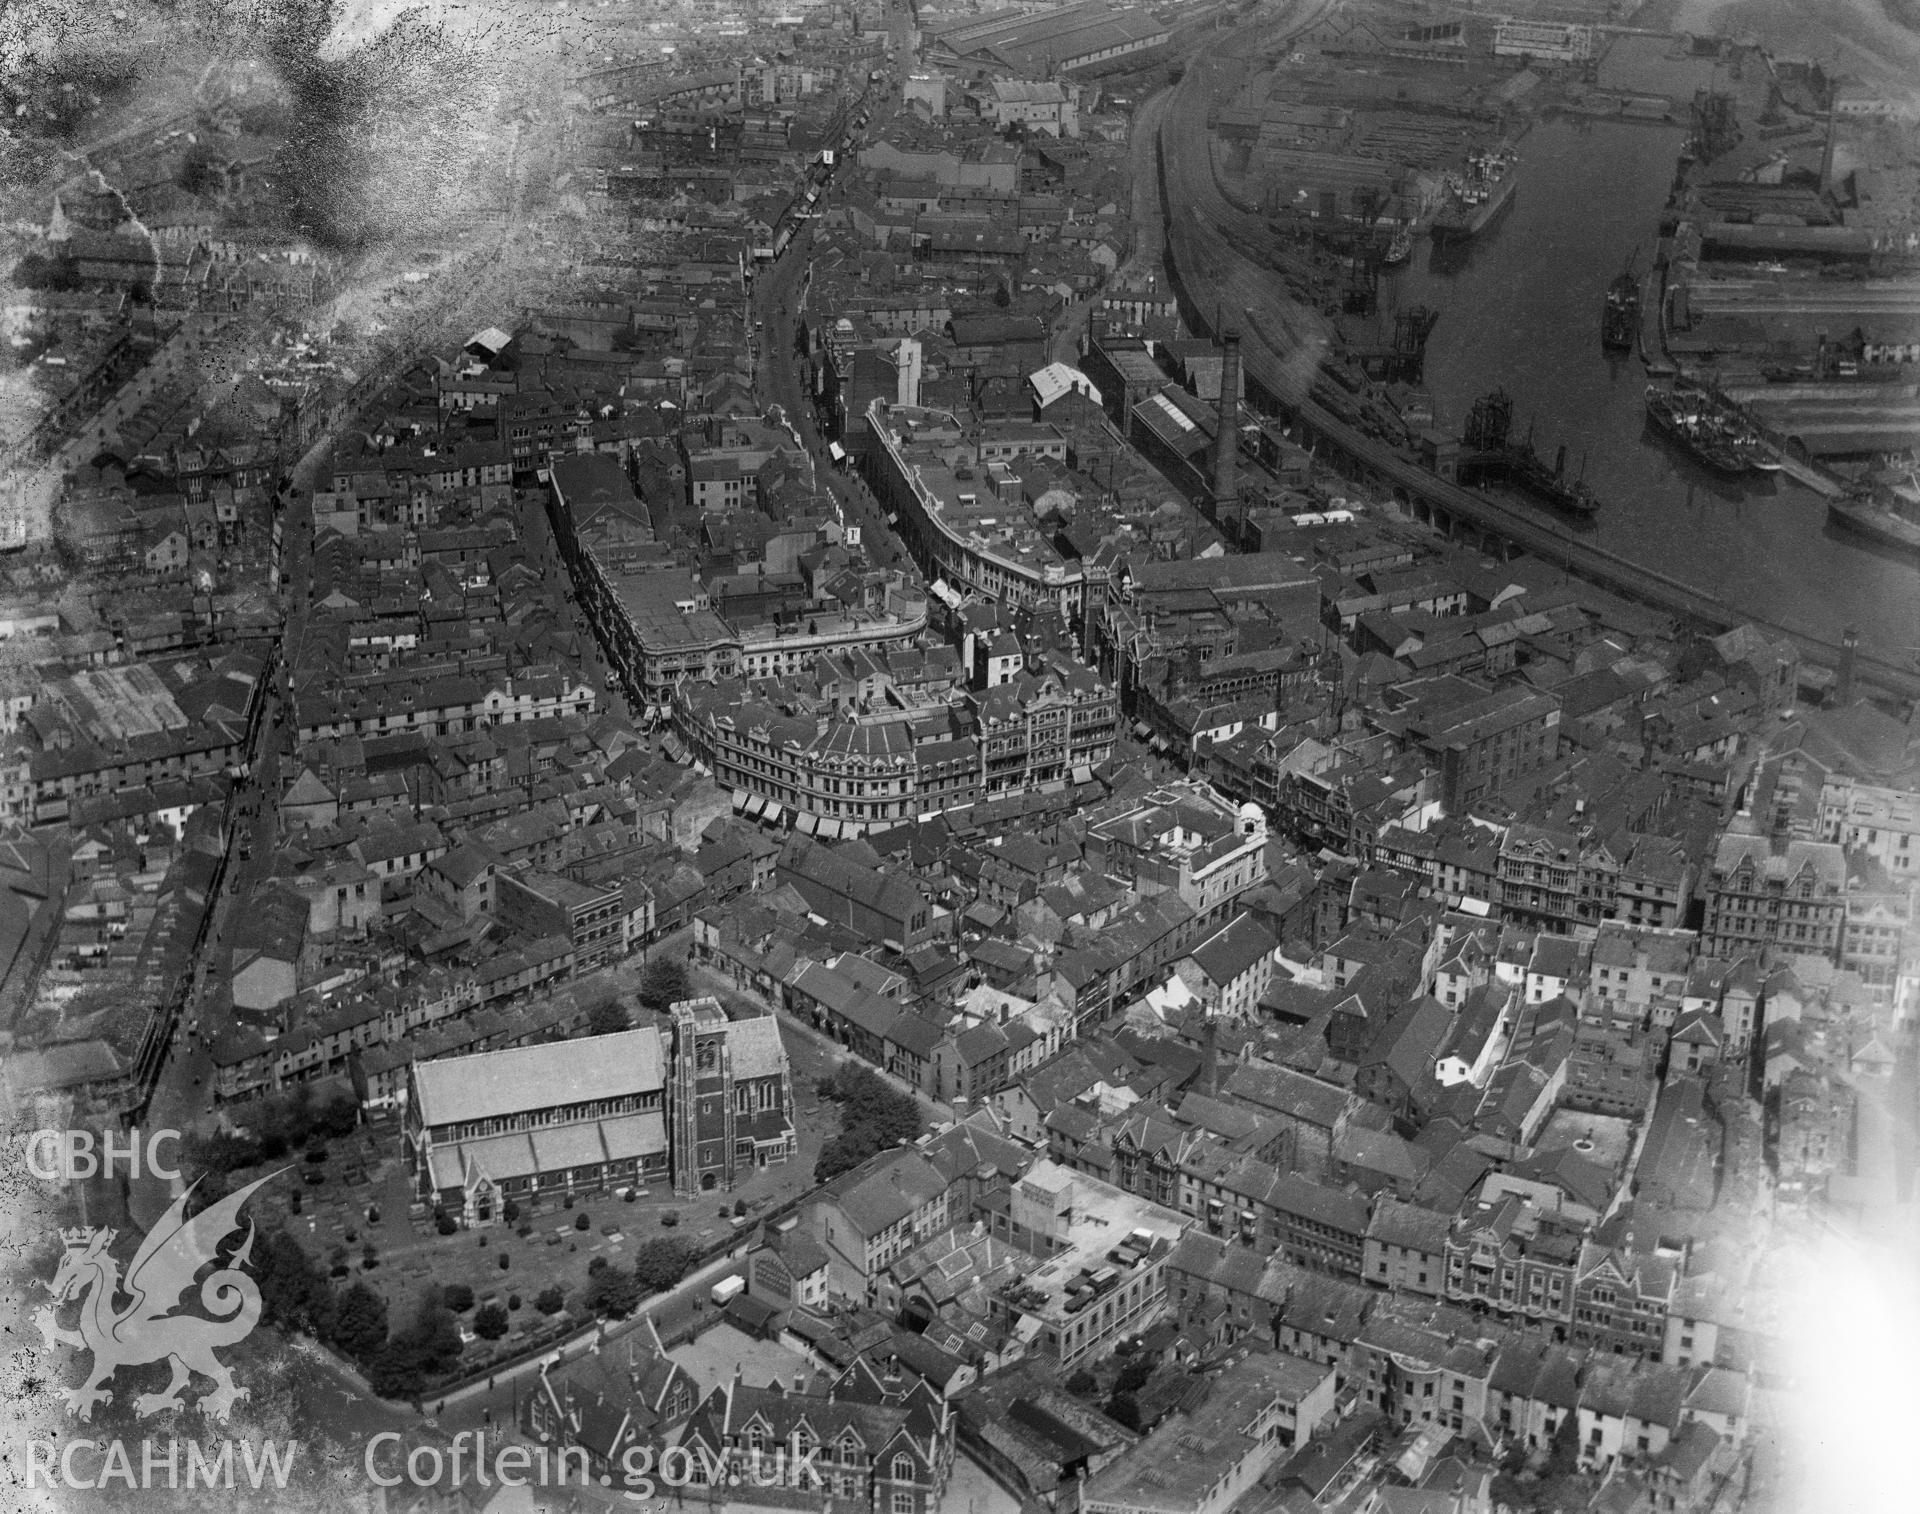 Black and white oblique aerial photograph showing Swansea City, from Aerofilms album Swansea (Box W30), taken by Aerofilms Ltd and dated 1923.